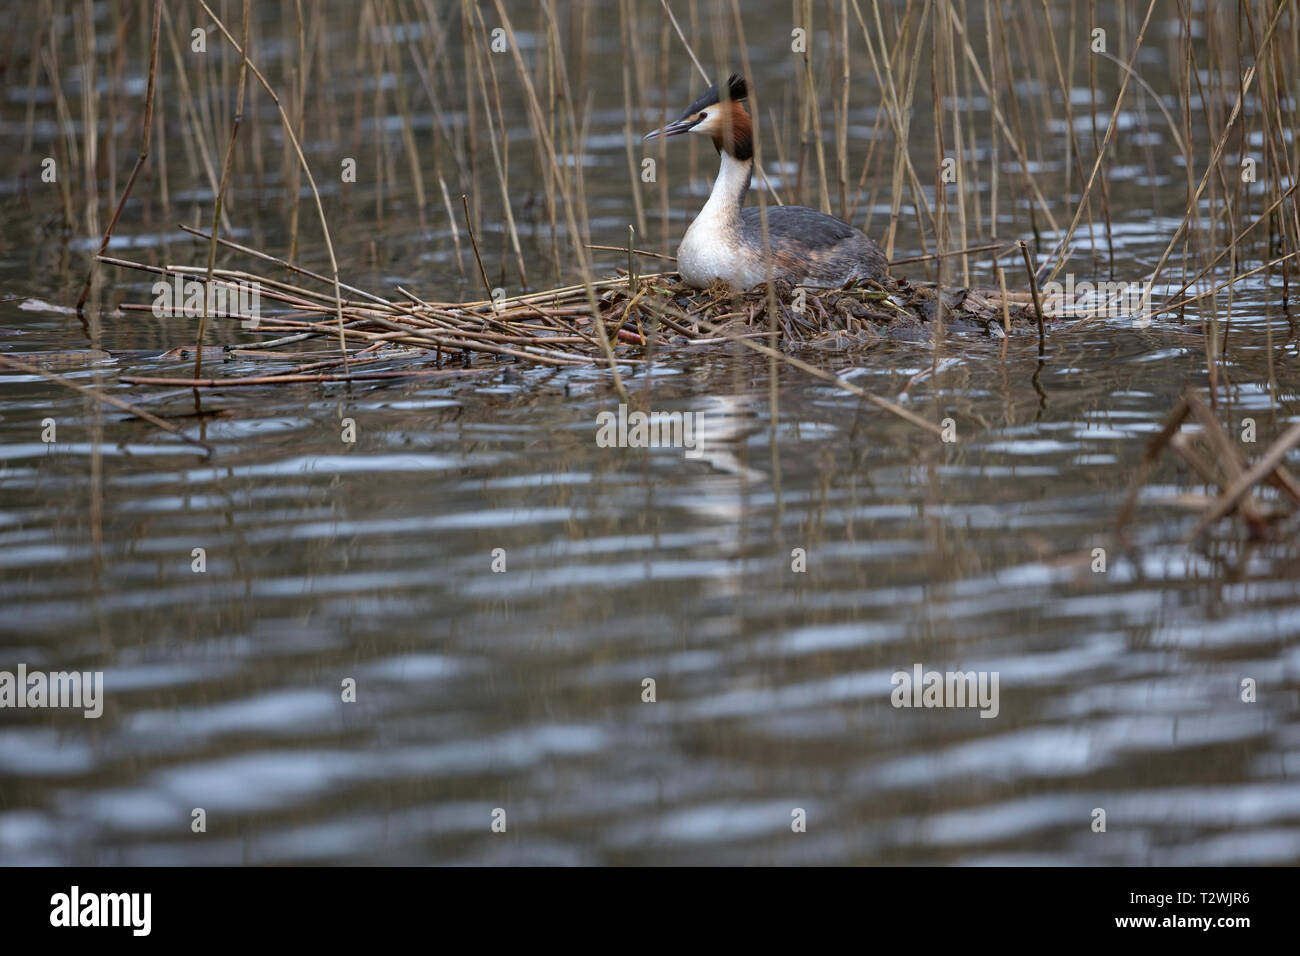 Great Crested Grebe (Podiceps cristatus) Stock Photo